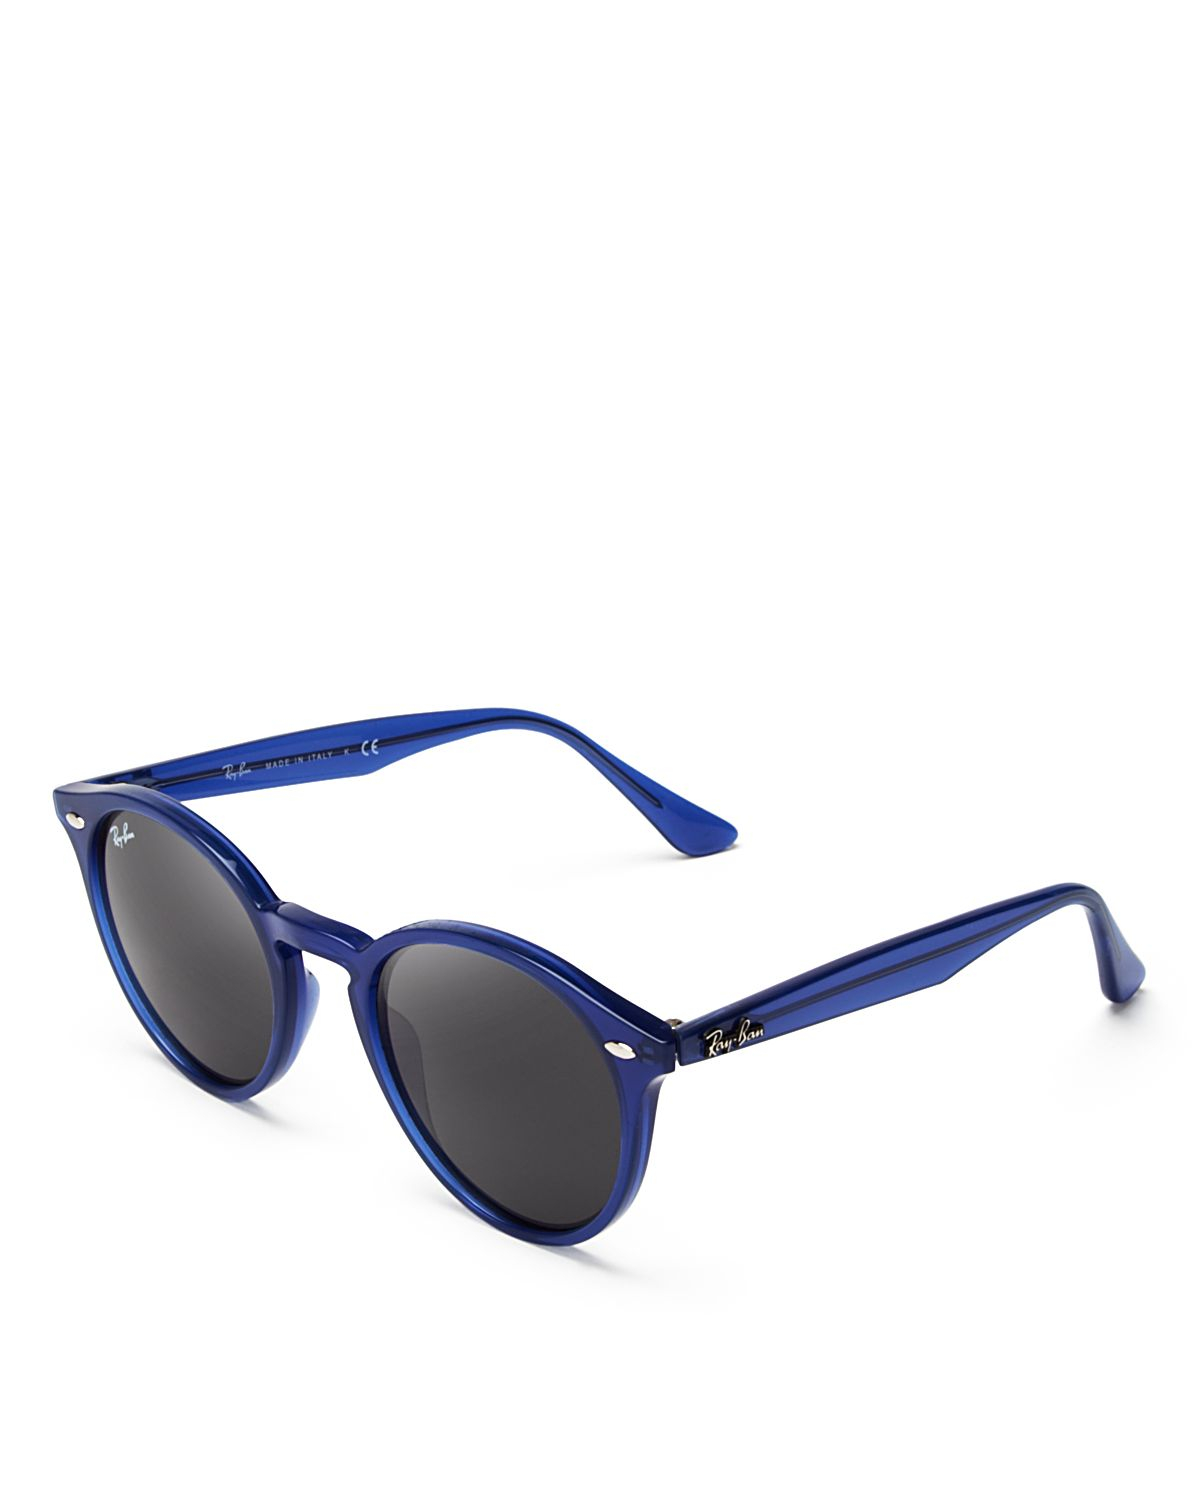 ray ban women round sunglasses